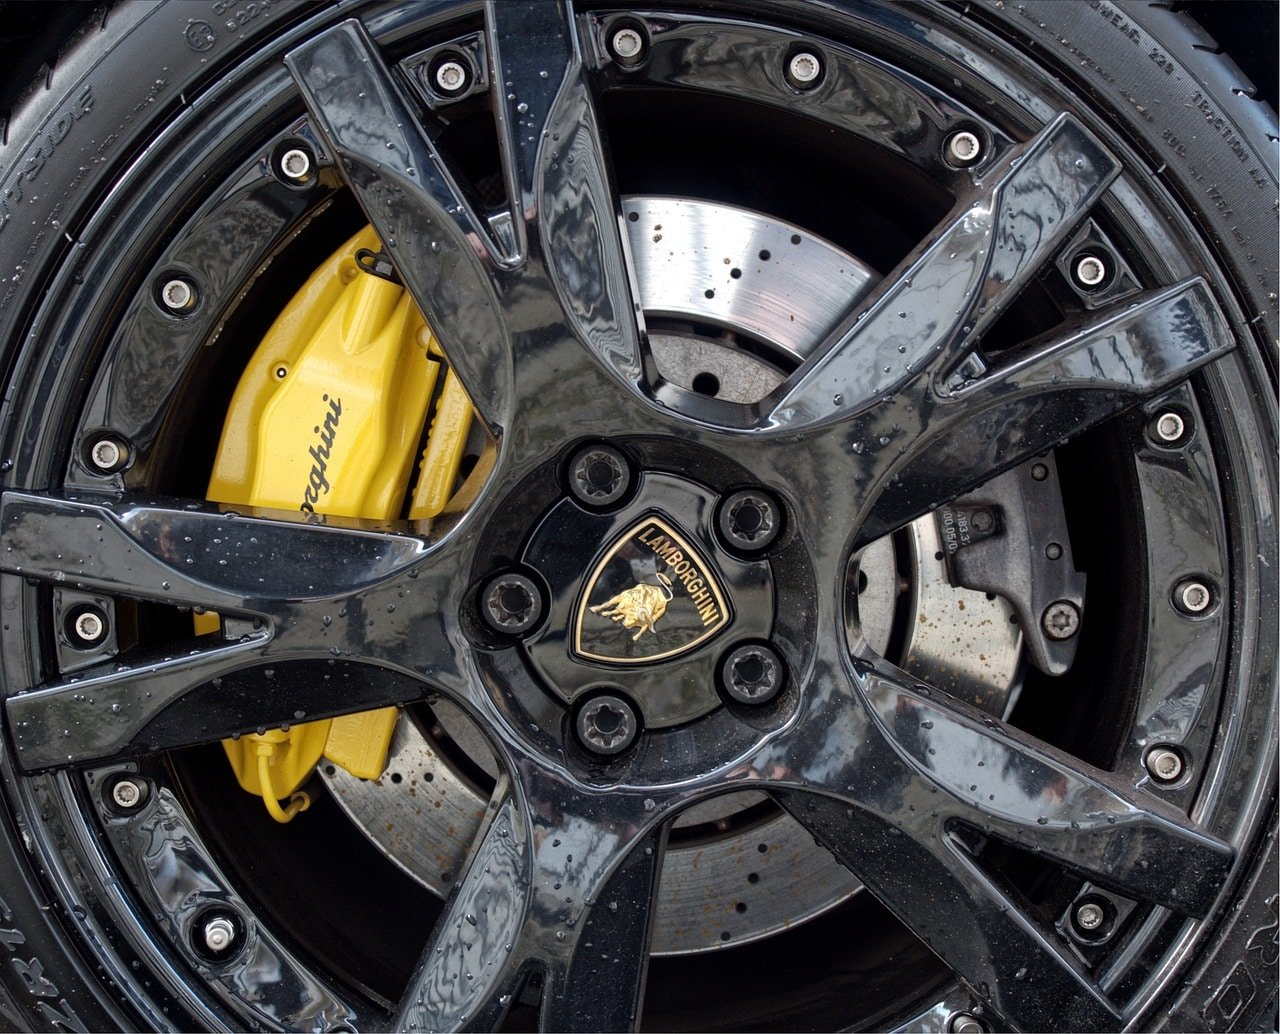 lamborghini, wheel, car